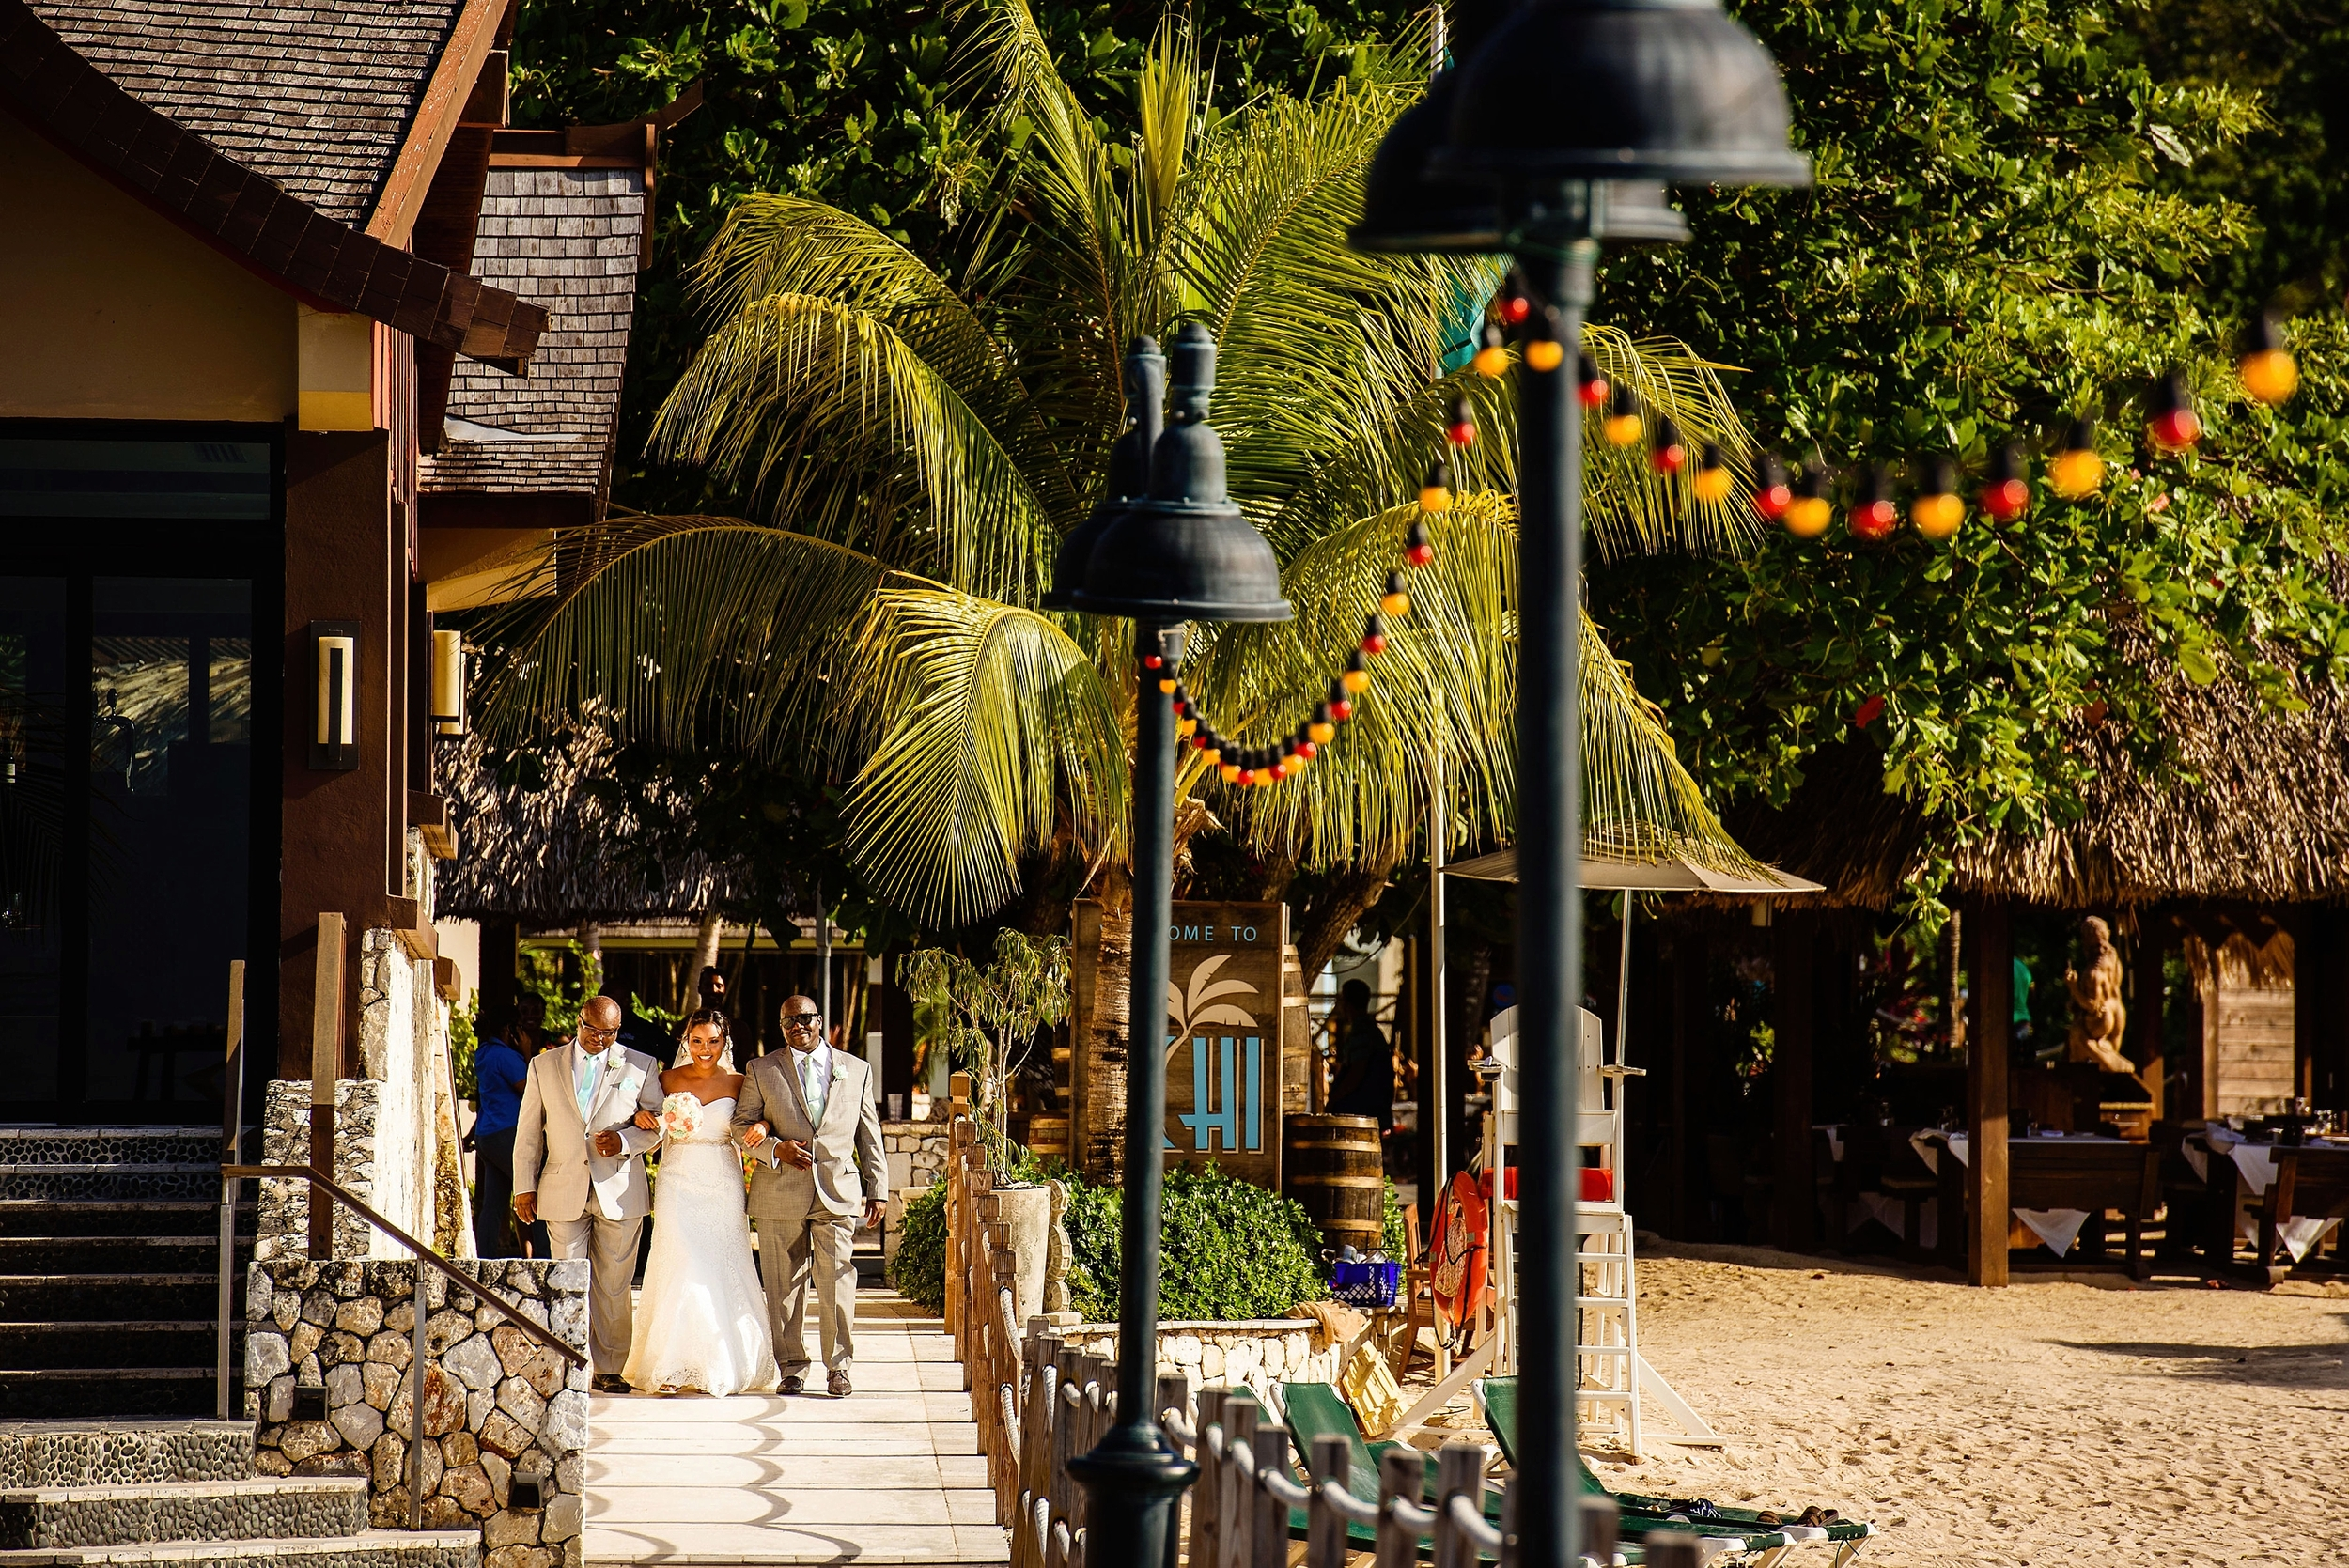 Gorgeous Jamaica Wedding Photography at Sandals Ocho Rios by Chad Winstead Photography